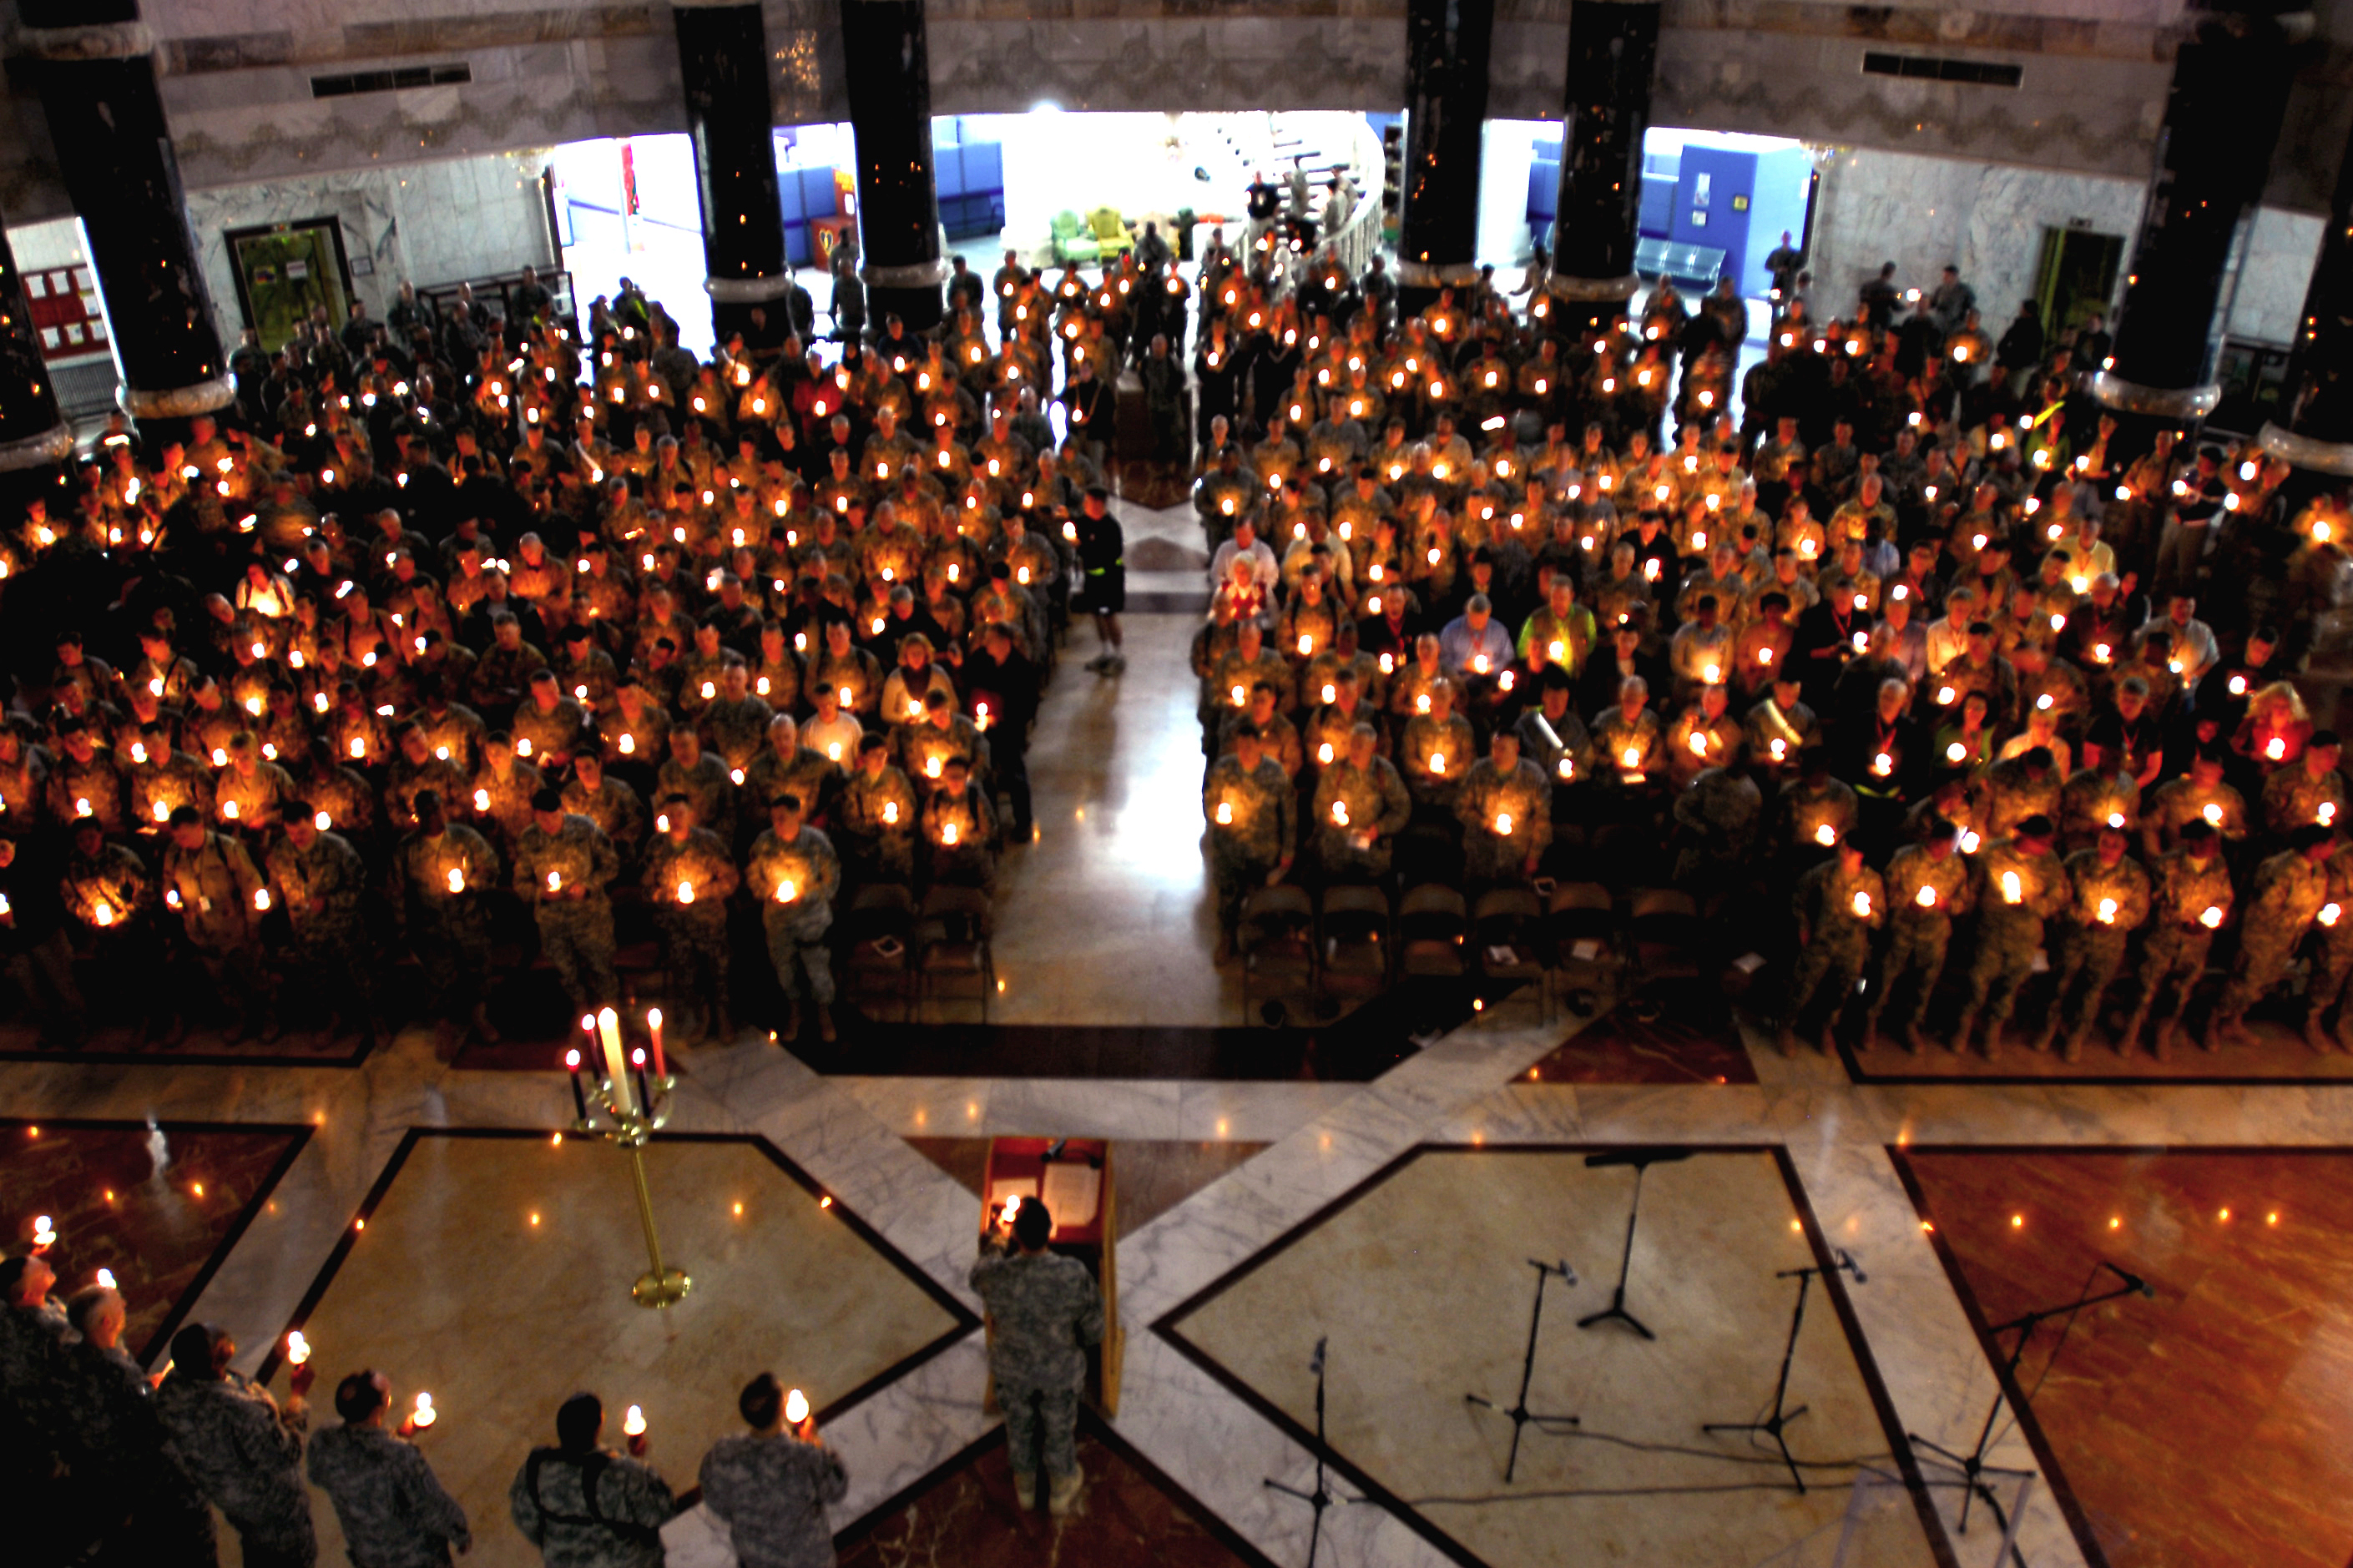 Service members at Victory Base Complex, Iraq, attend the Christmas Eve Candlelight Service at Al Faw Palace, Baghdad, Iraq, Decembrt 24, 2008. U.S. Army photo by Spc. Eric J. Glassey